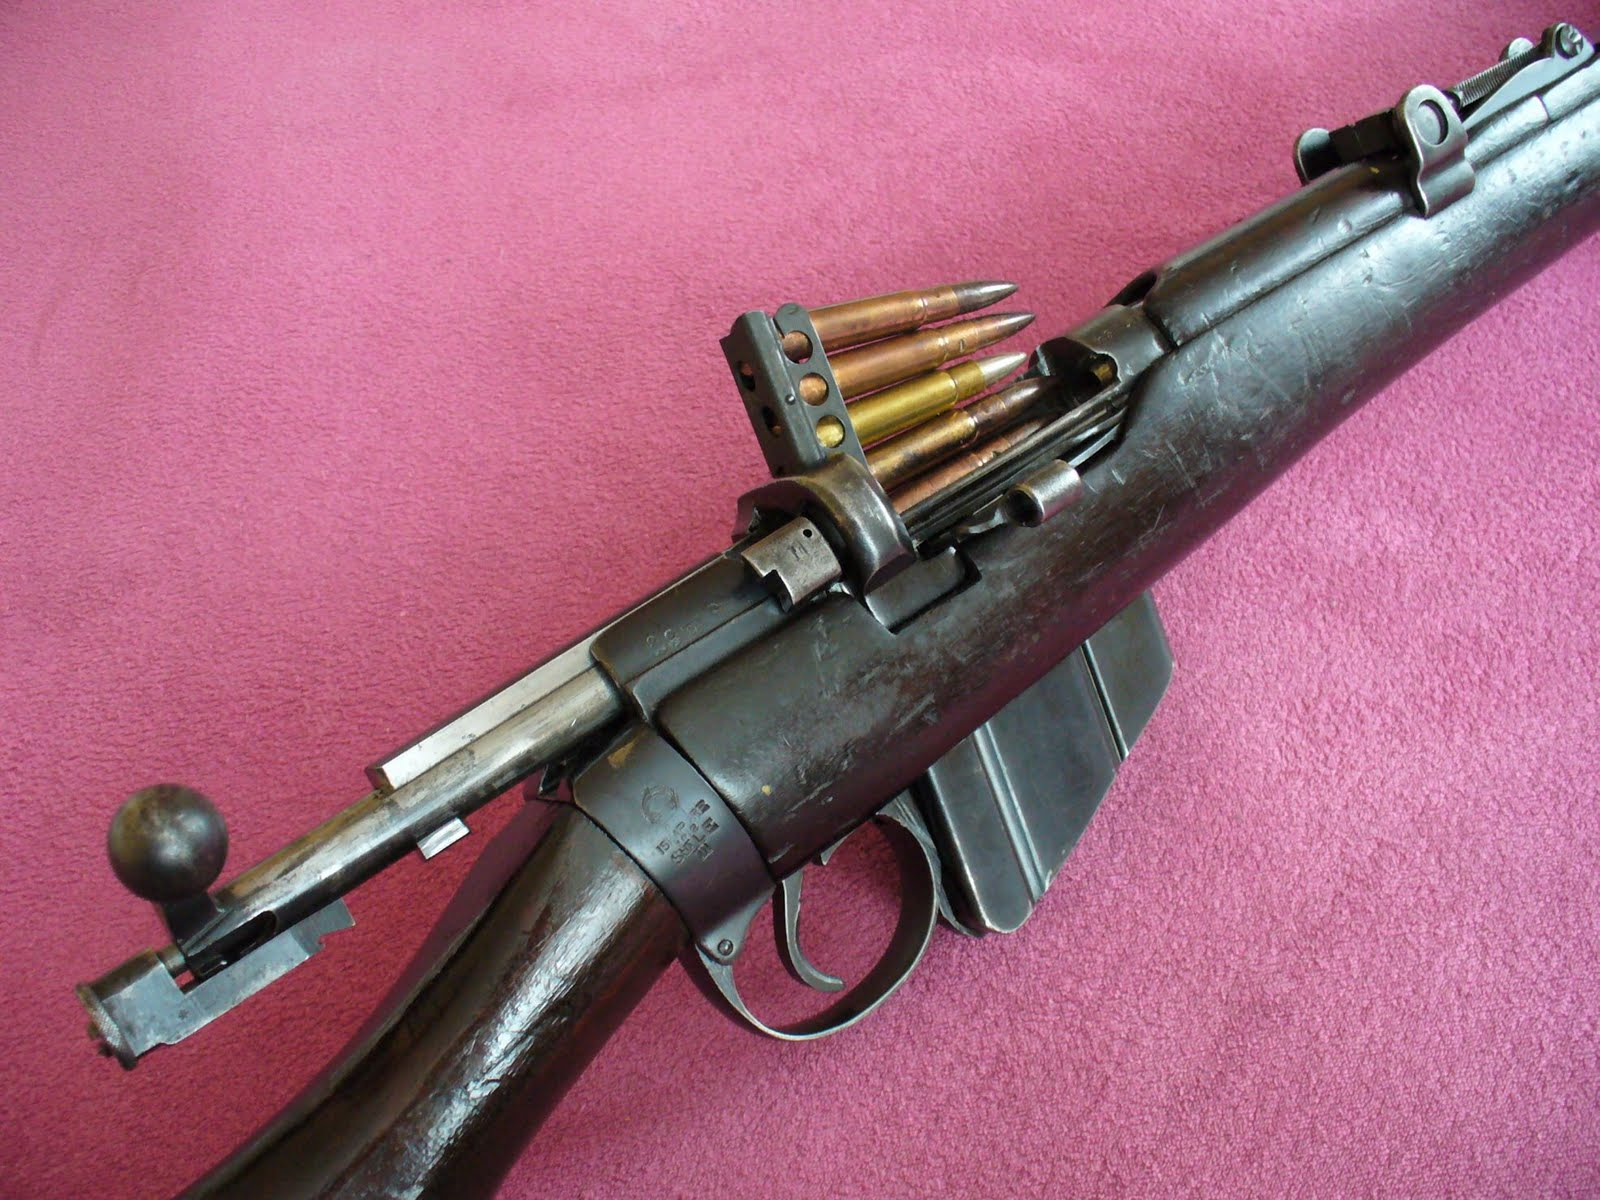 High Resolution Wallpaper | Lee Enfield Mk Iii Rifle 1600x1200 px